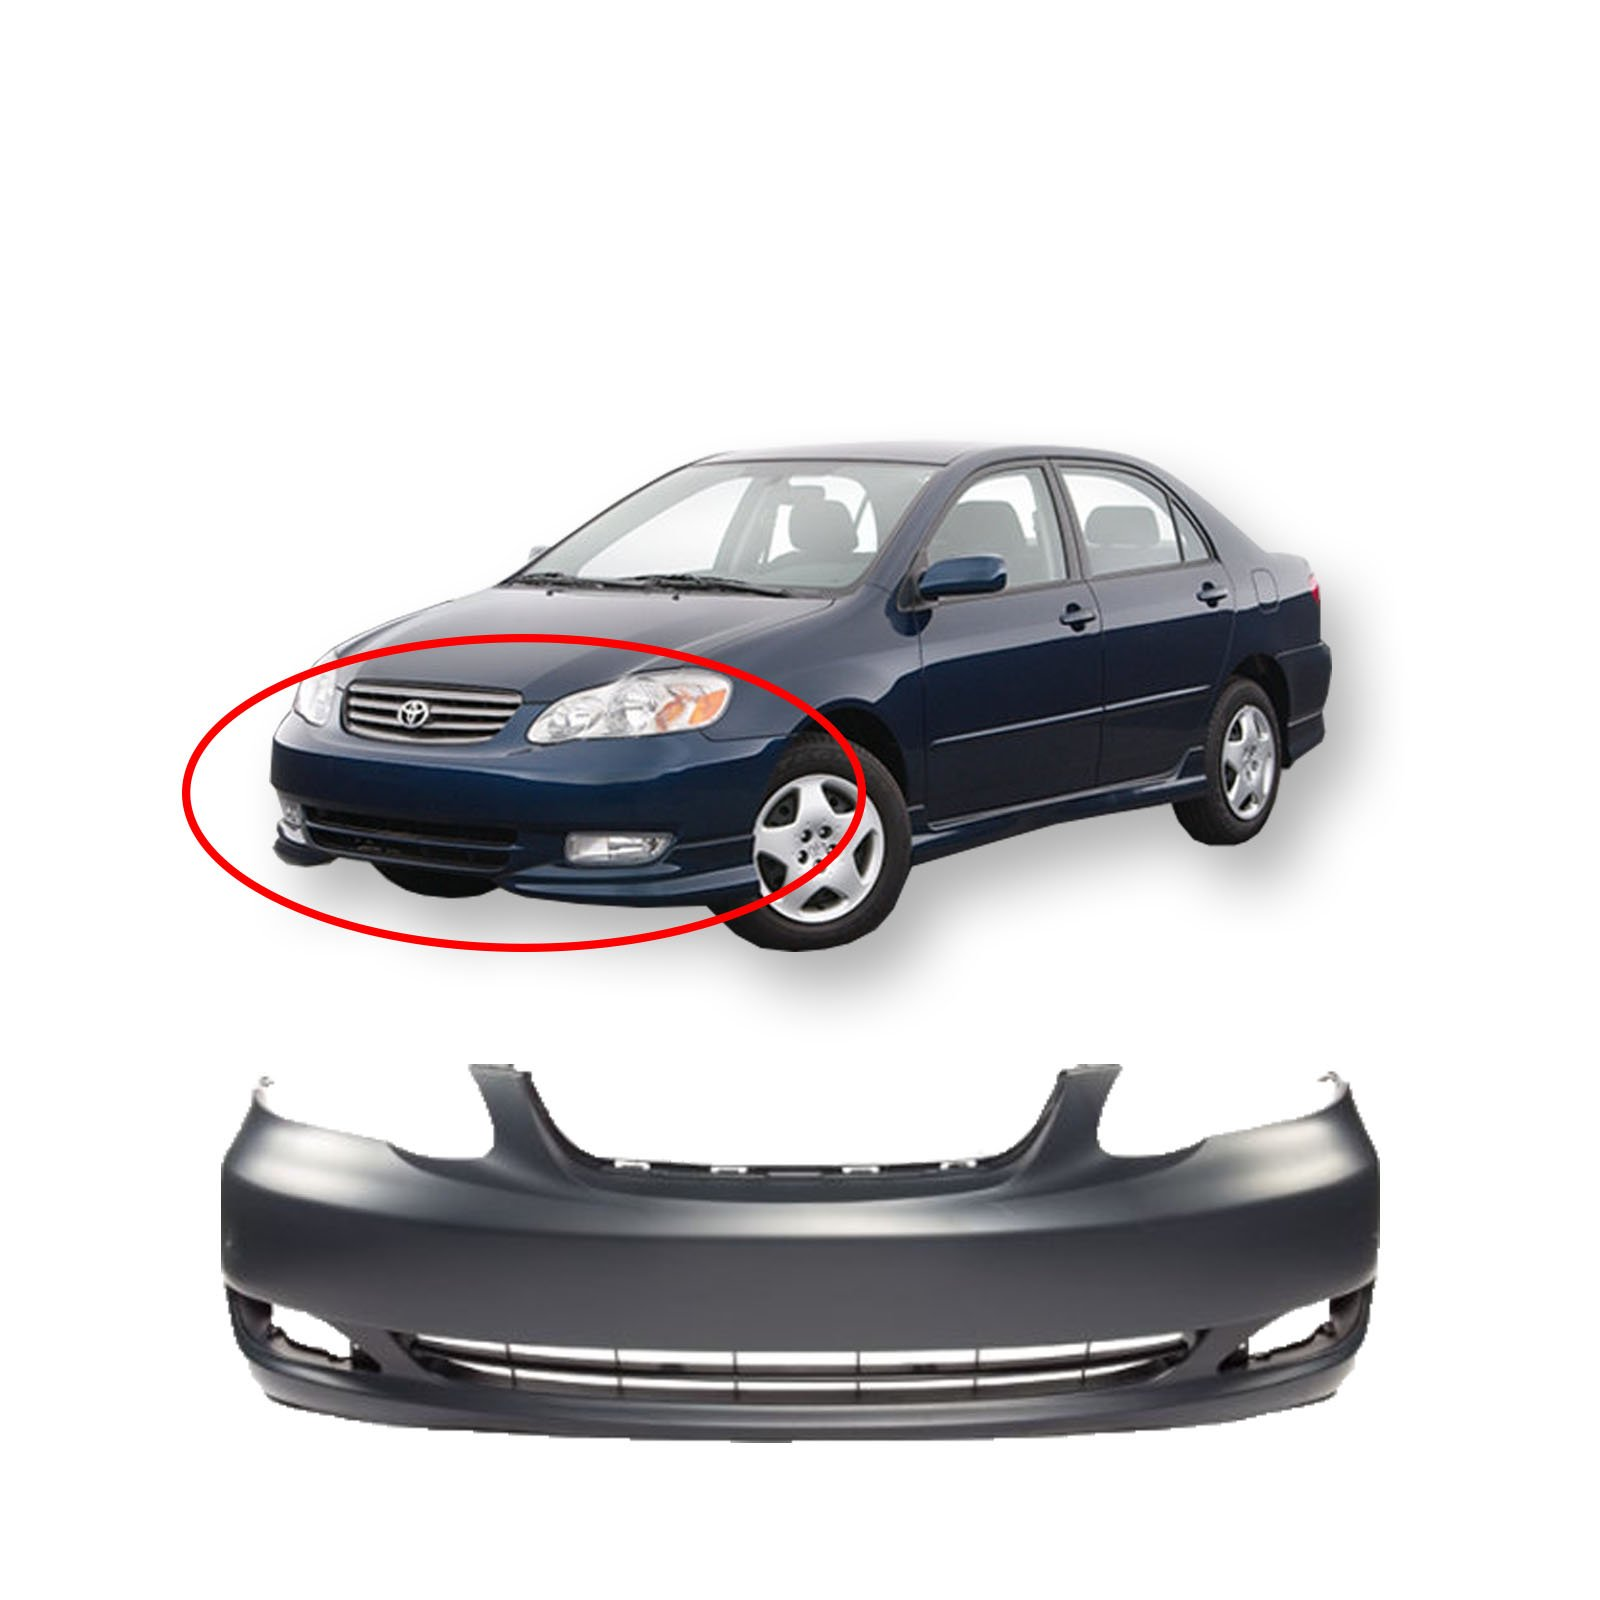 NEW Painted to Match Front Bumper Cover for 2005-2008 Toyota Corolla CE LE 05-08